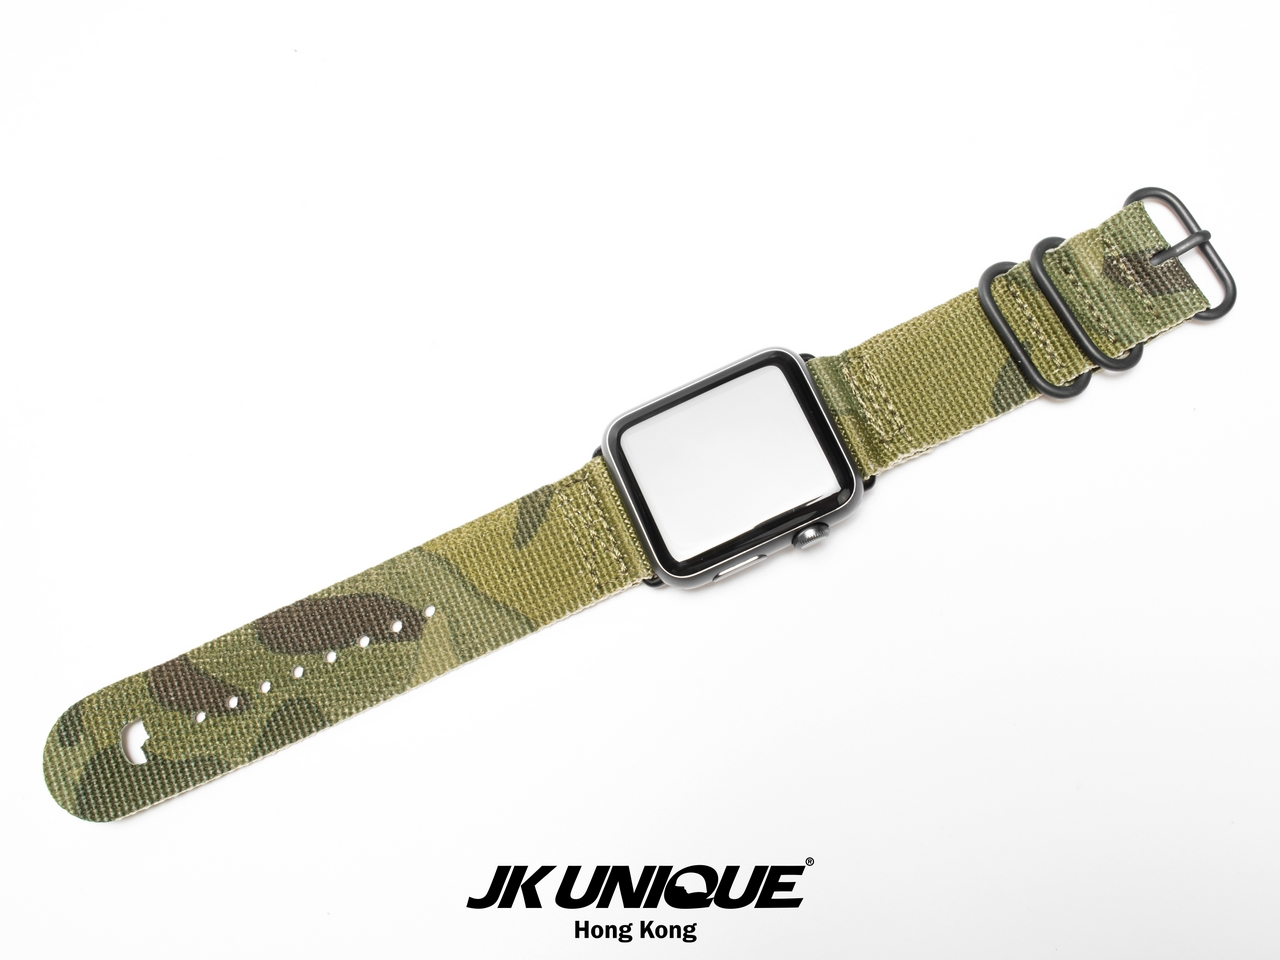 JK-UNIQUE-CAMO-NATO-Apple-Watch-Strap-42mm-BK-Multicam-Tropic-3 (1280).jpg